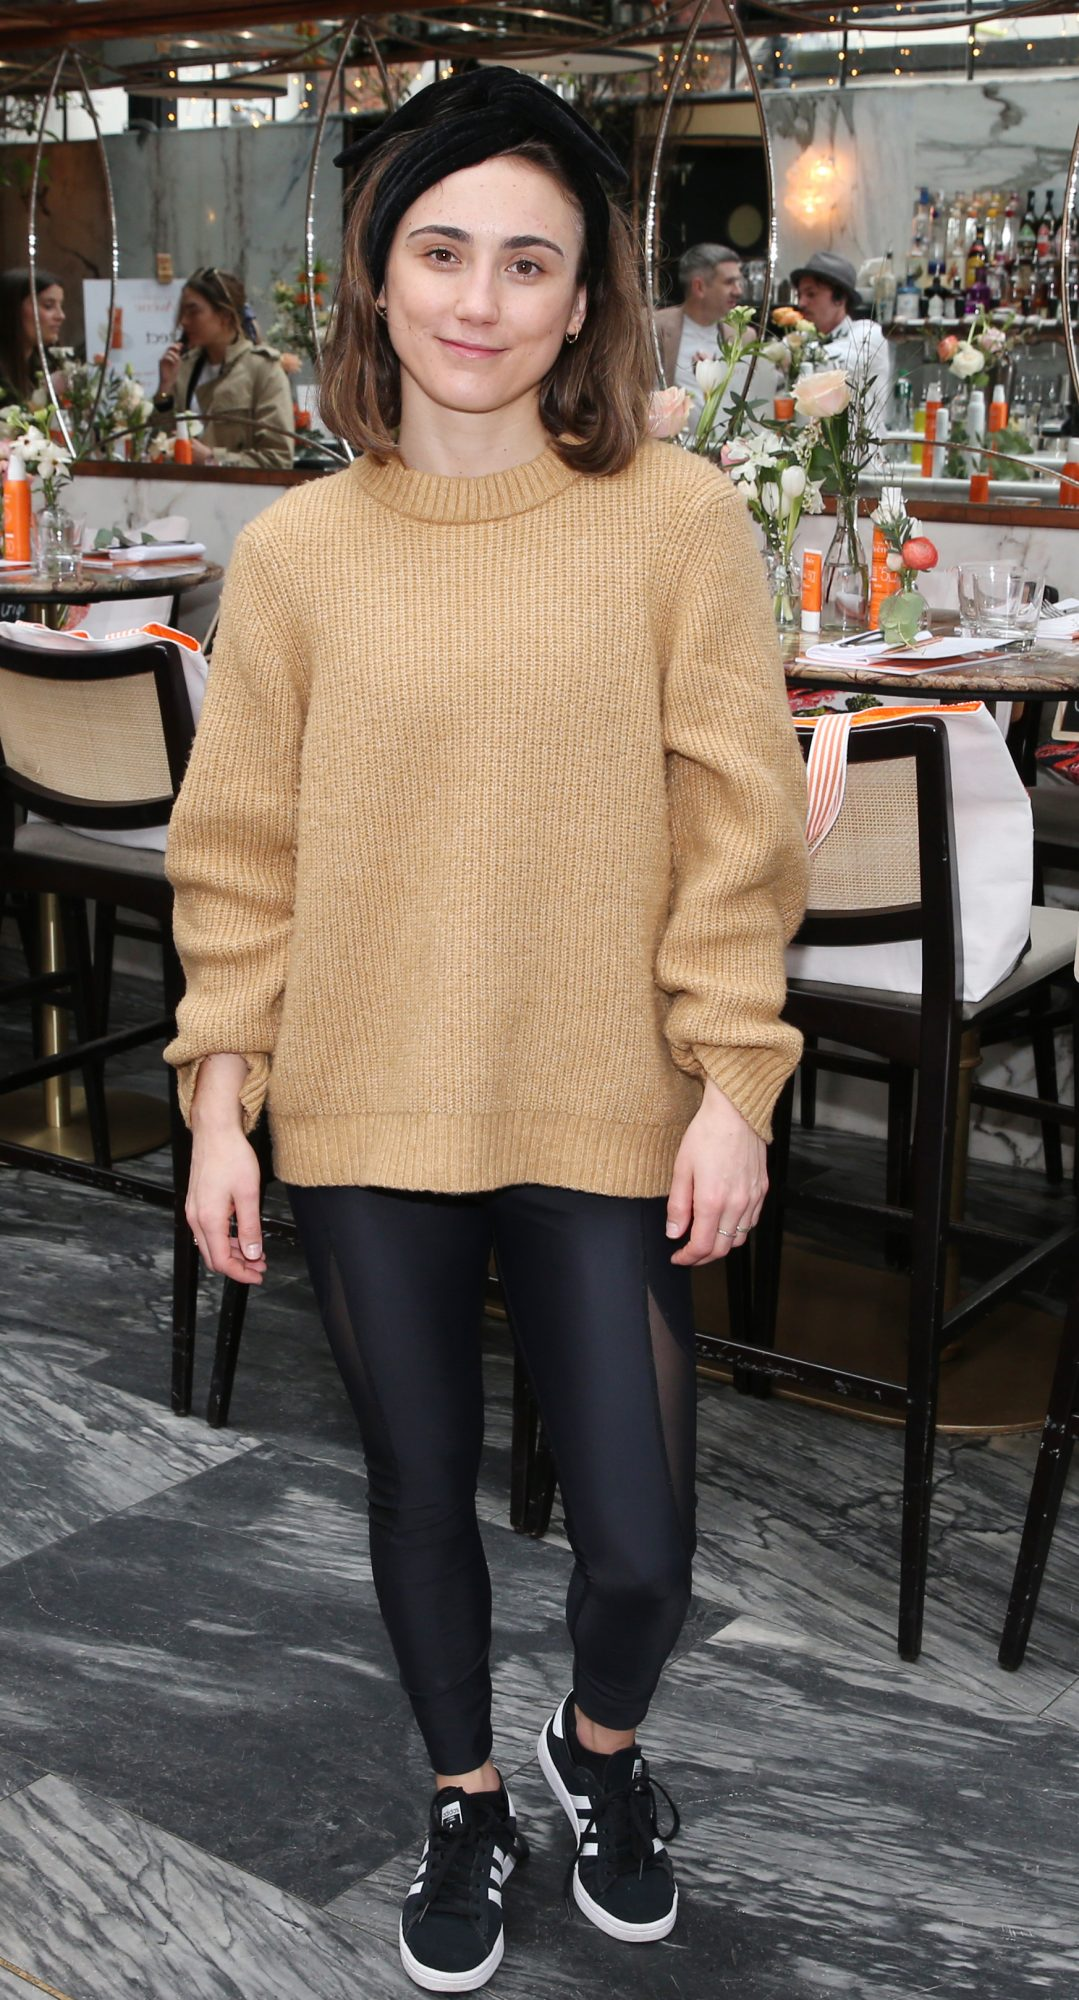 Pictured is Gigi Tynan at the launch of the new Avène Expert Suncare Range in The Grayson Dublin. The new range of suncare from the French brand is suitable for all skin types and includes a Sports Sun Cream, a City Shield BB Style High Protection Face Cream, two new SPF Body Sprays and a new Very High Protection Children's SPF. For more information visit www.avene.ie. Photo: Leon Farrell/Photocall Ireland.